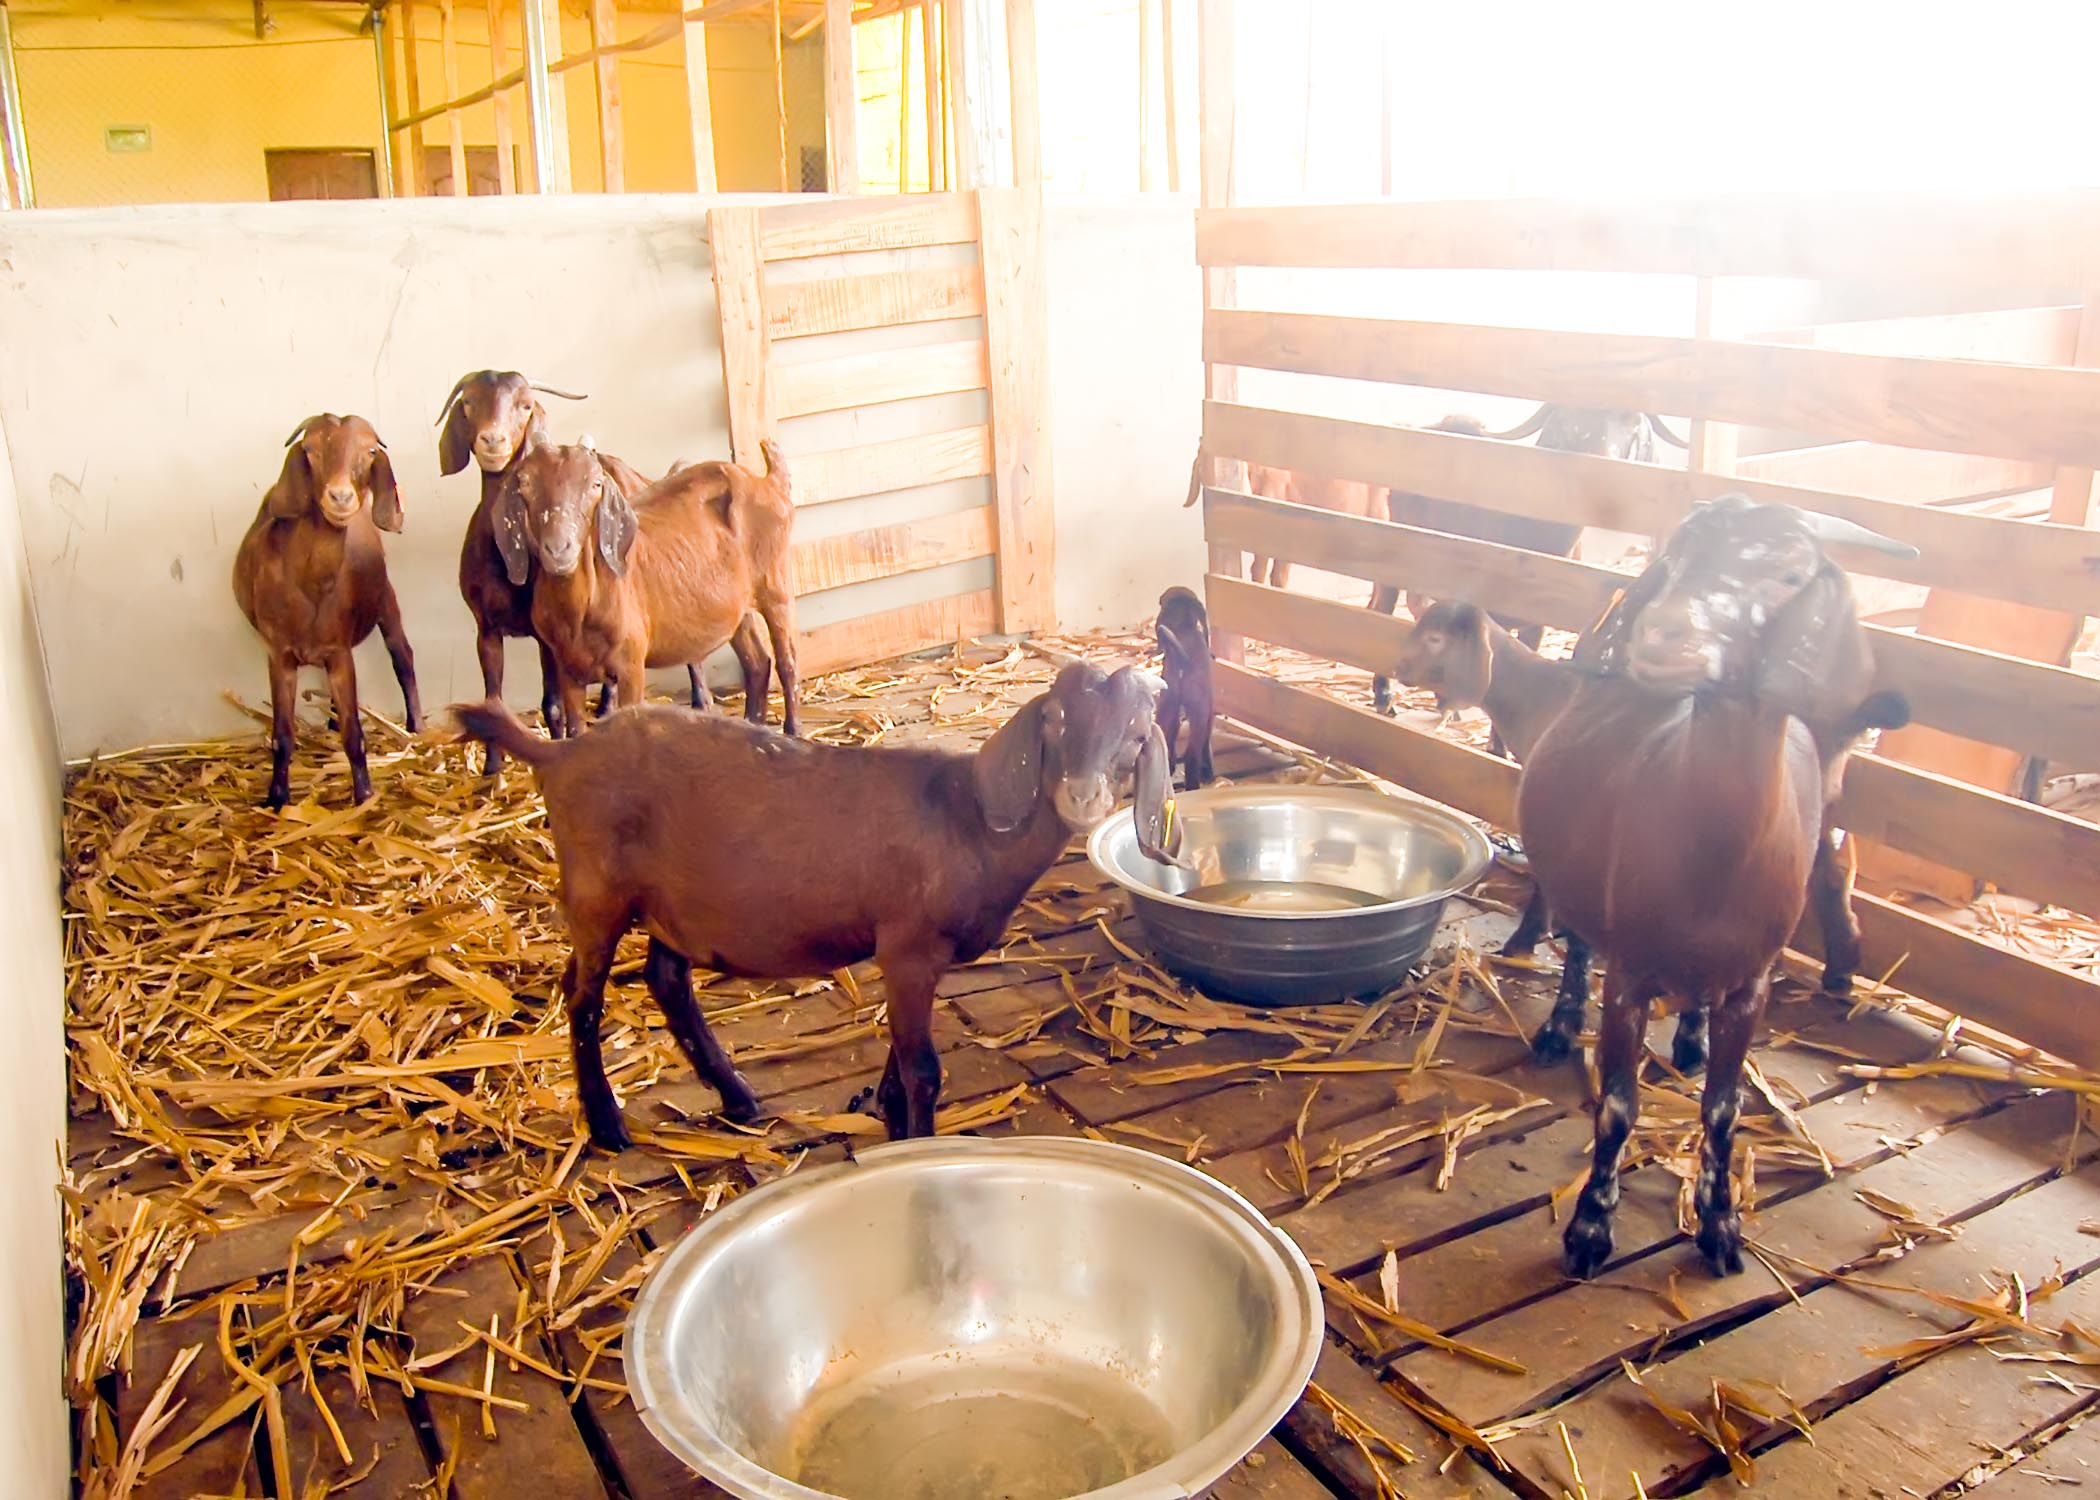 Kalahari goats in one of their rooms